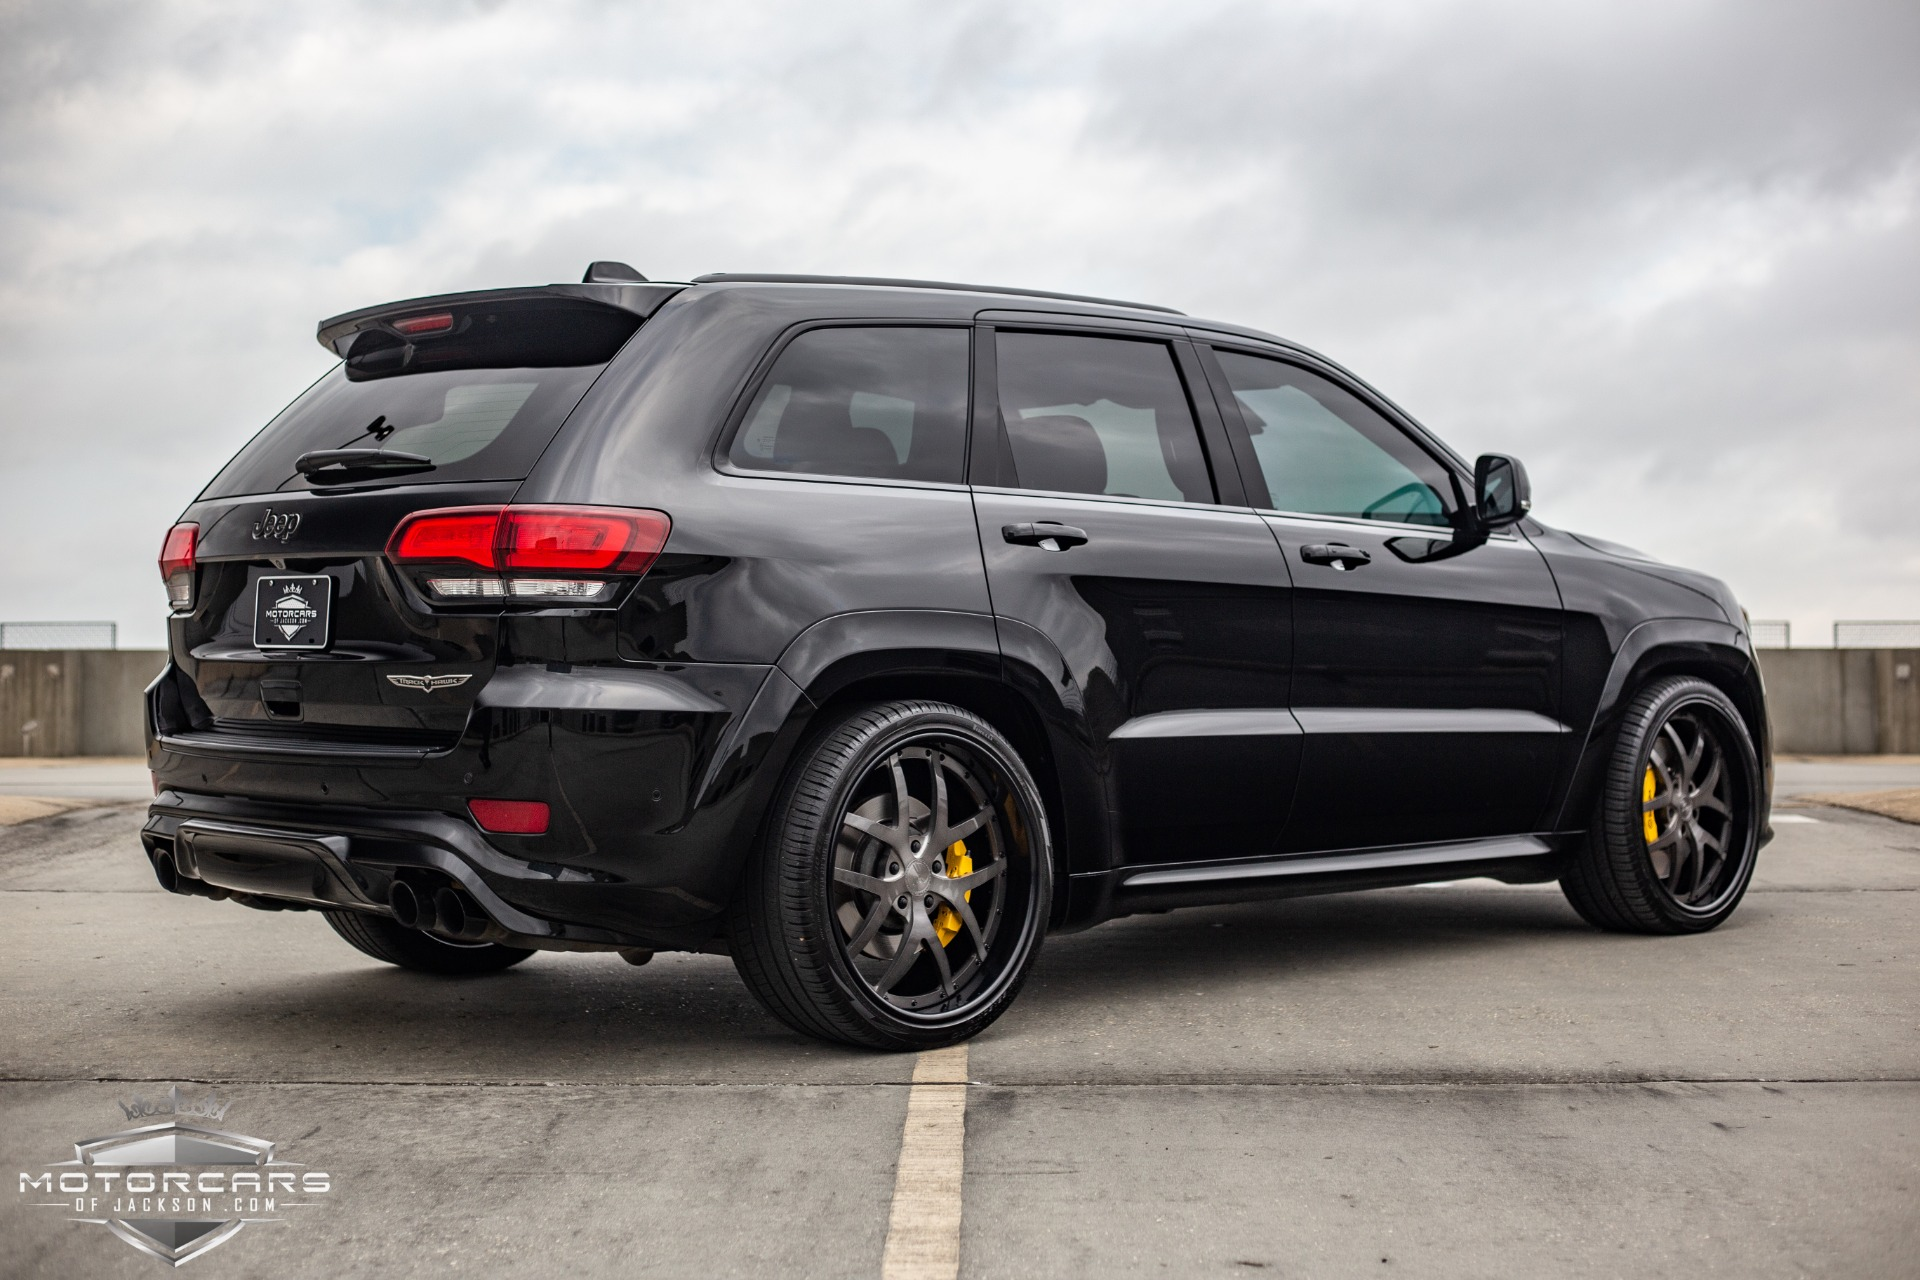 Used-2018-Jeep-Grand-Cherokee-Trackhawk-Jackson-MS